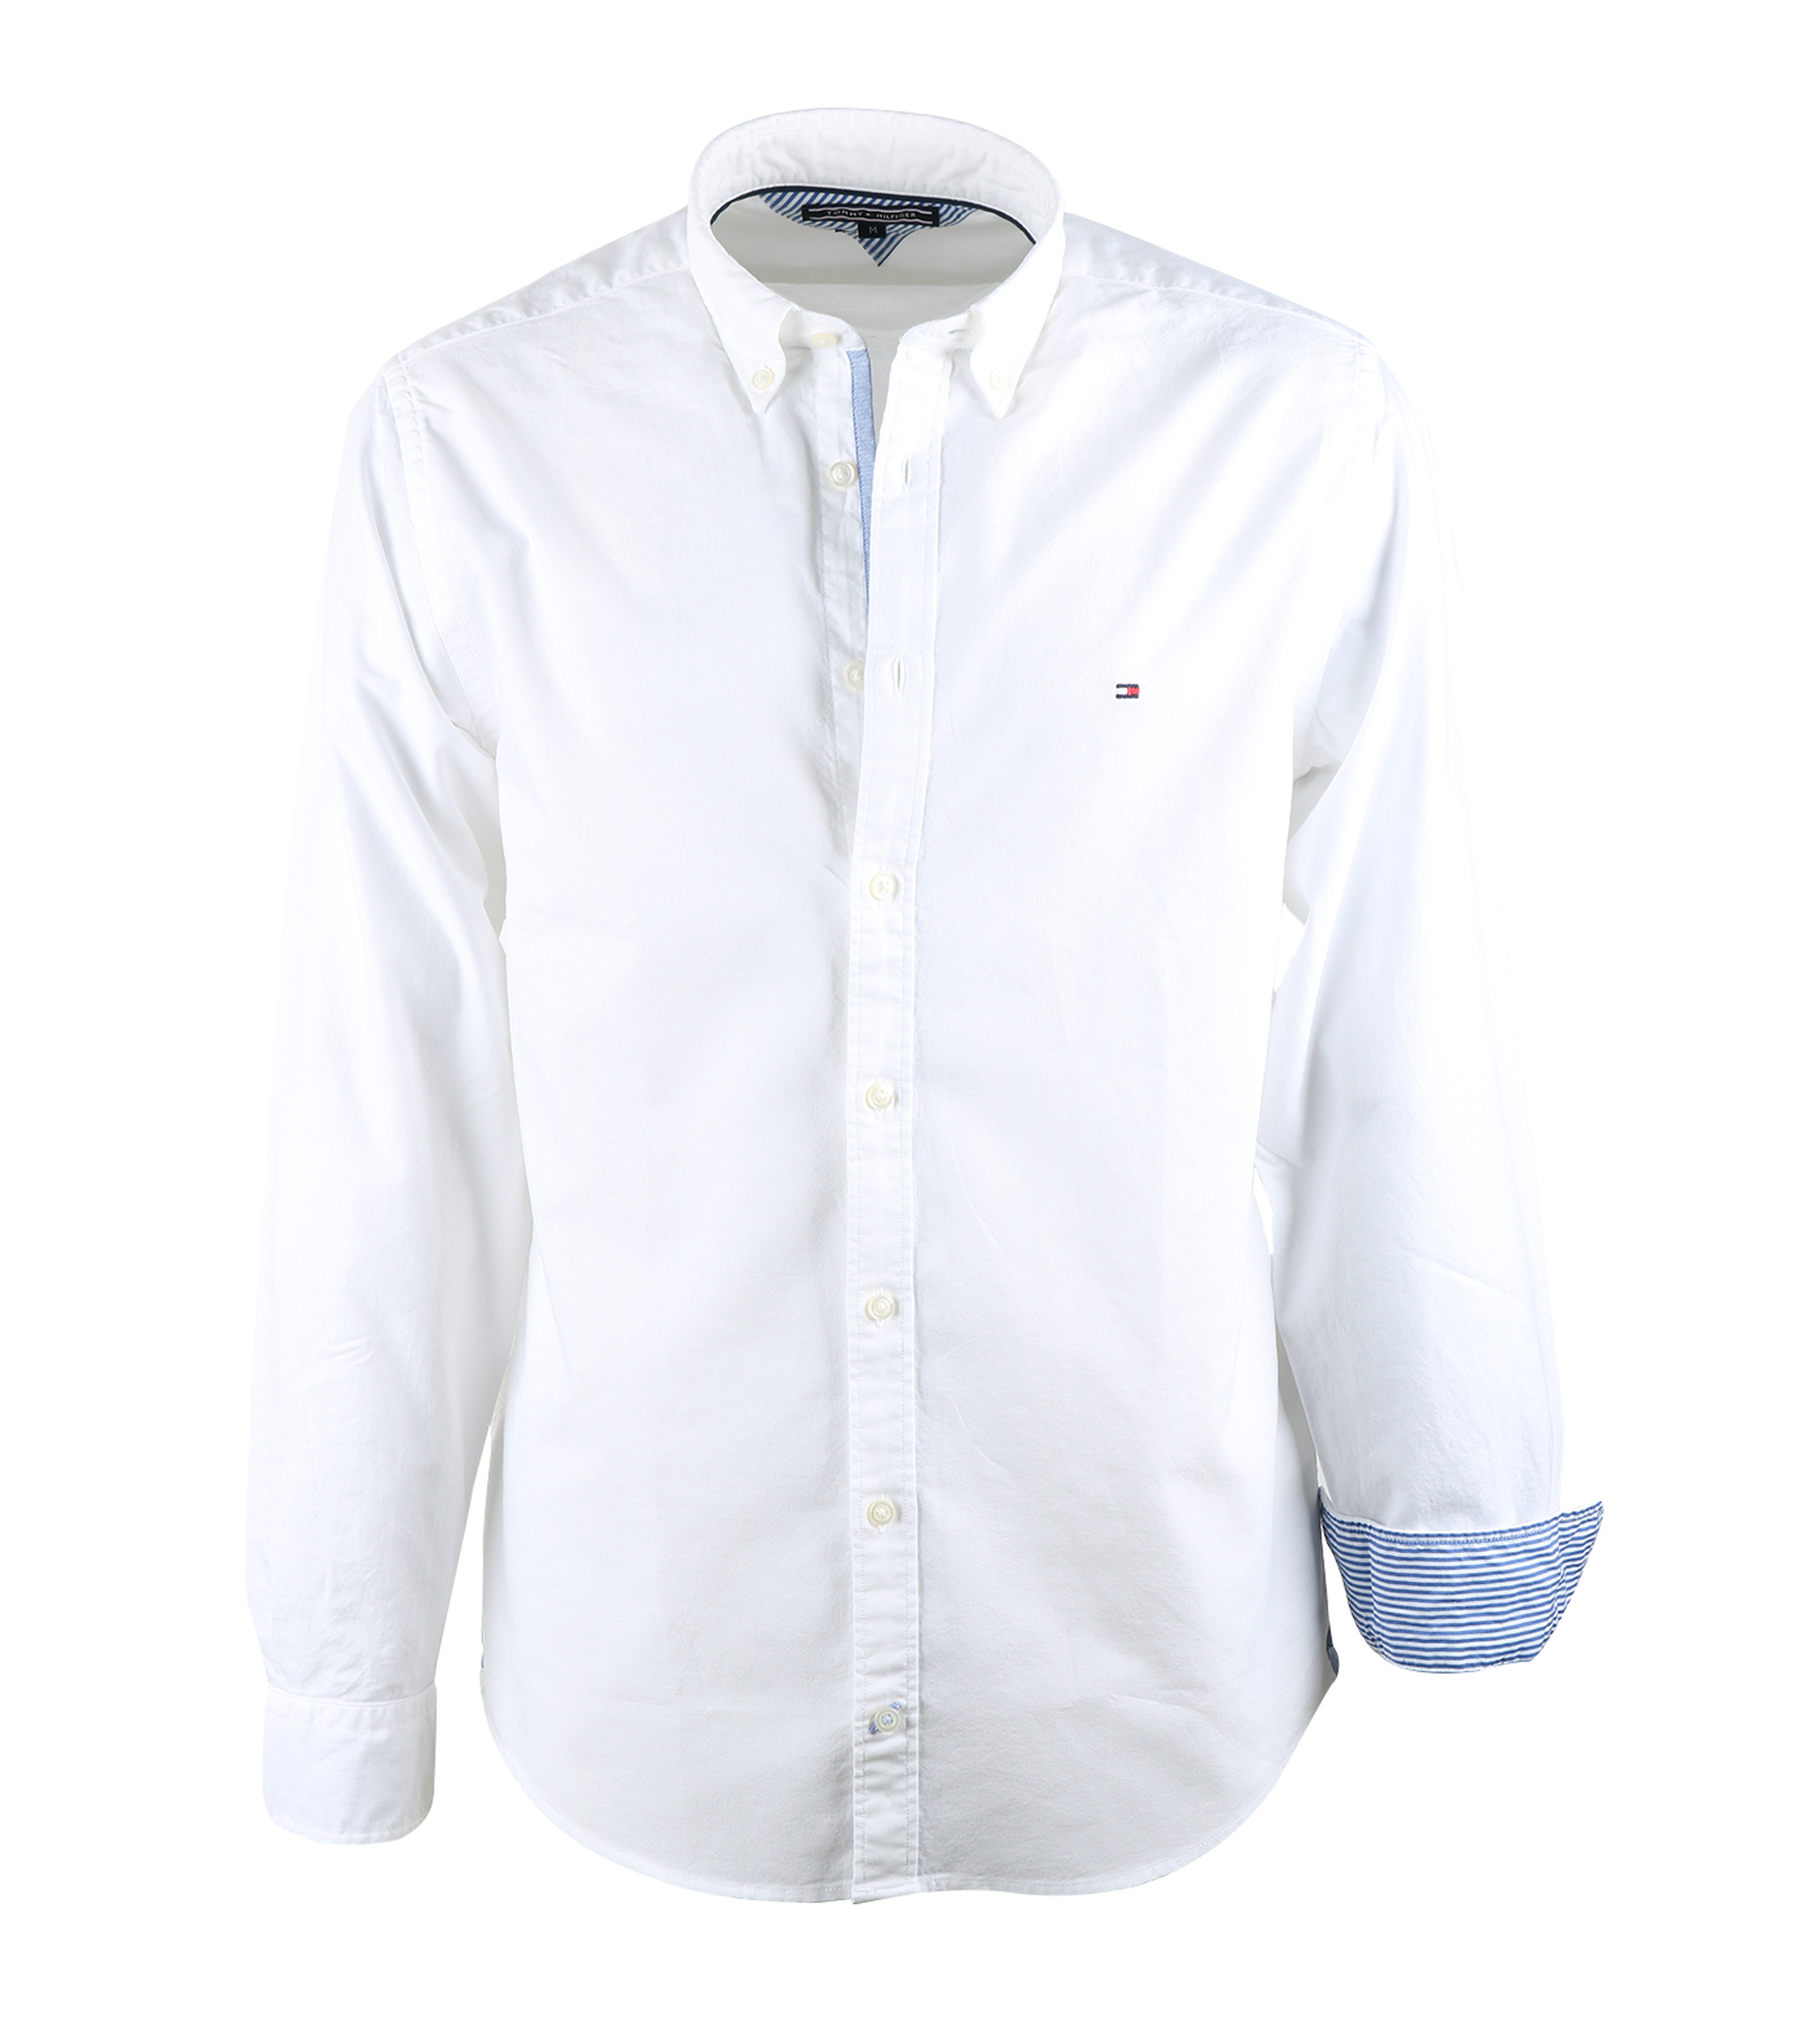 Tommy Hilfiger Shirt White 0867861996 100 Suitable